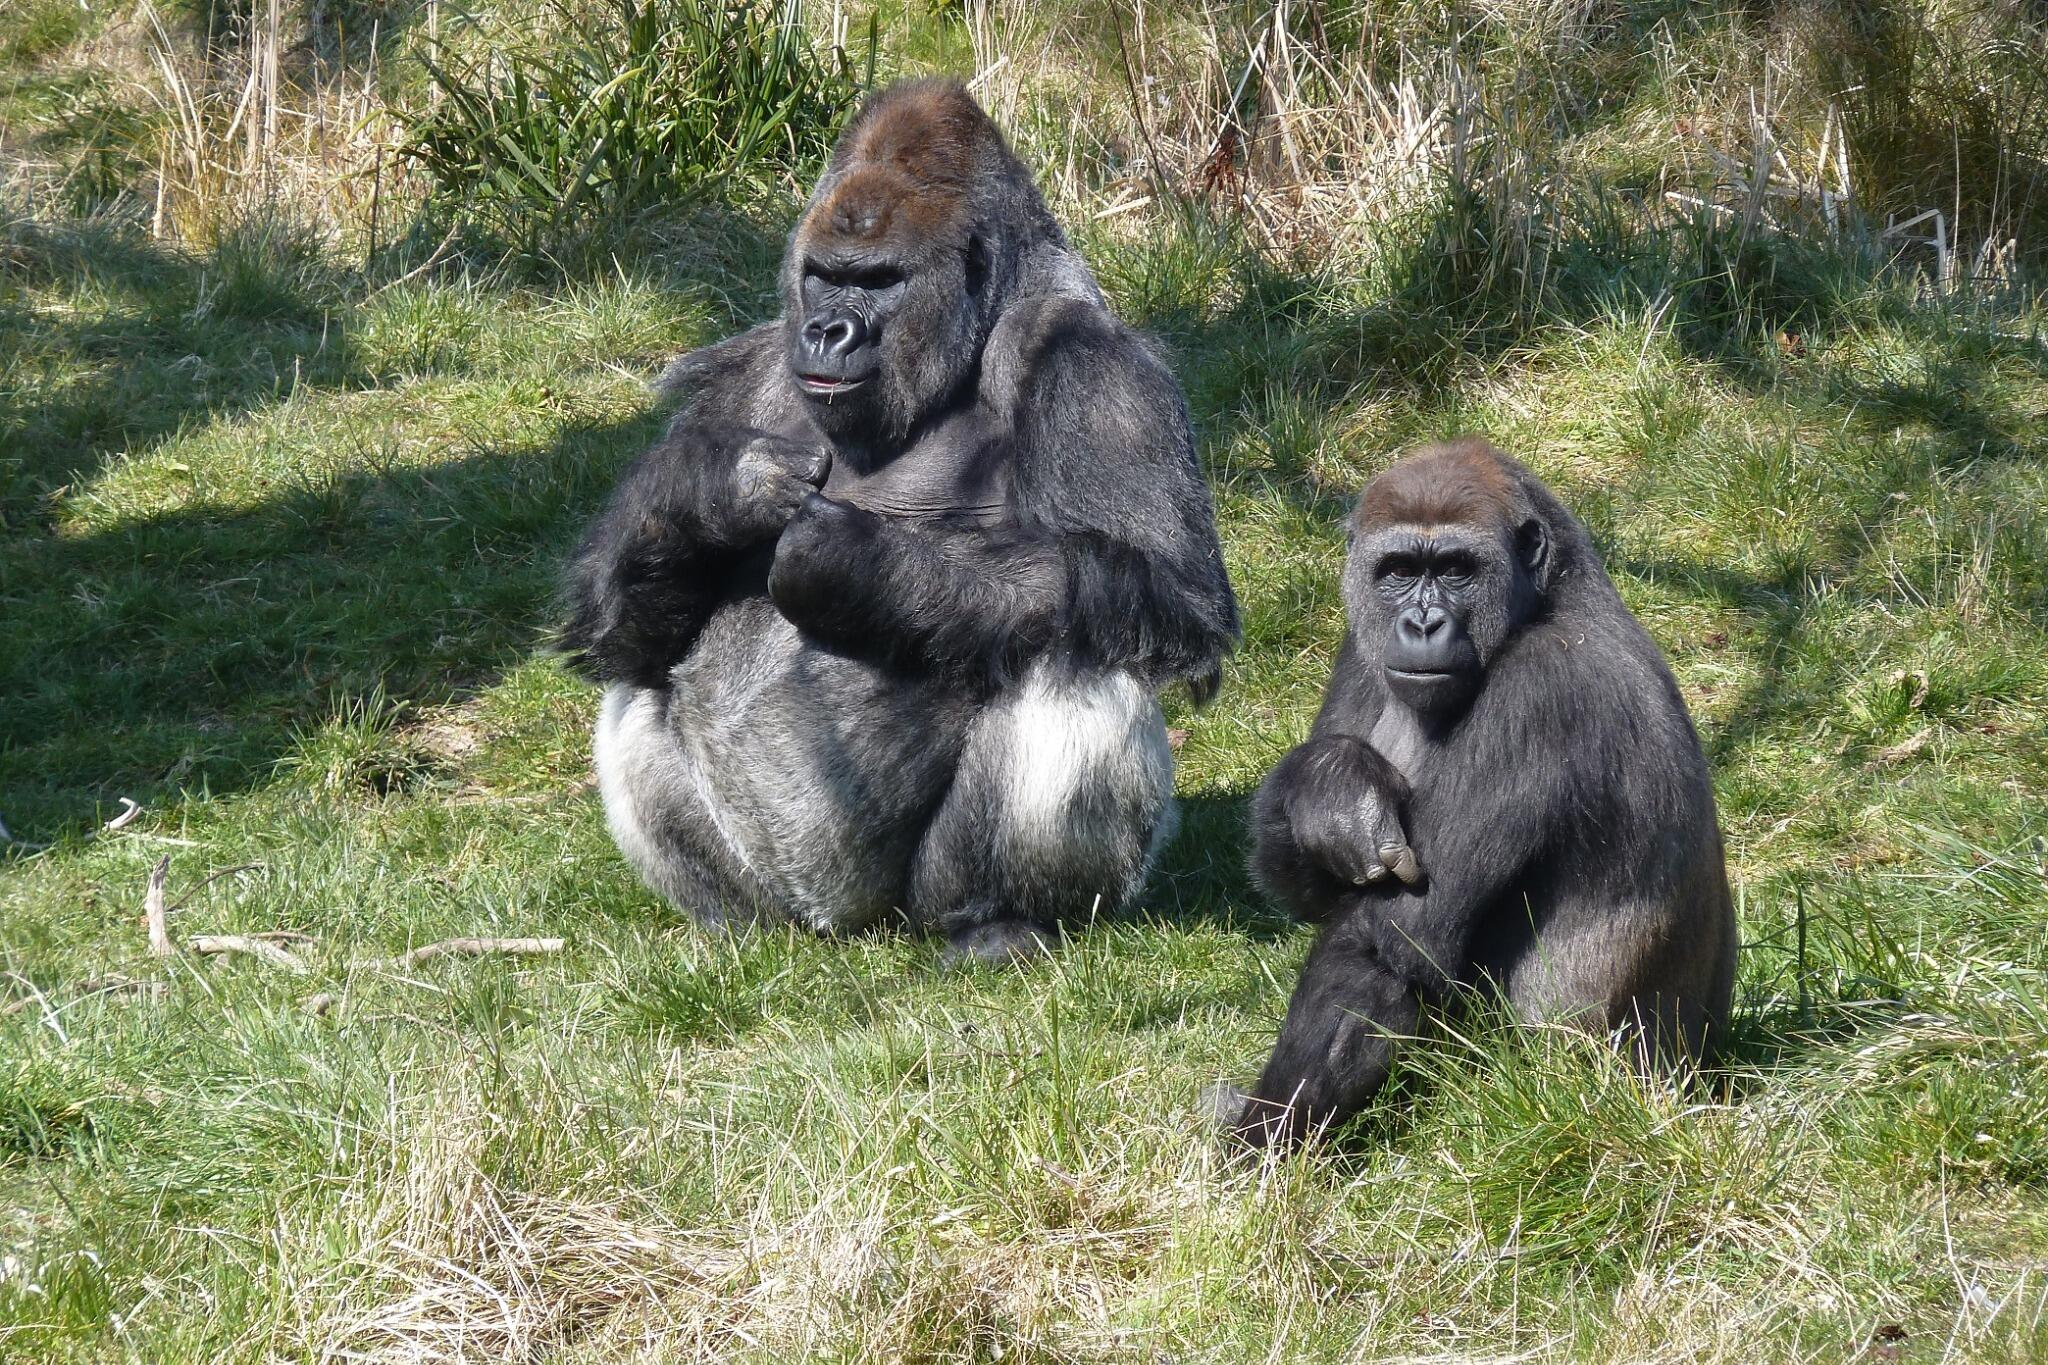 RT @davidcorway: @DublinZoo Busy day in the Zoo today! http://t.co/P3IXG6qMOQ